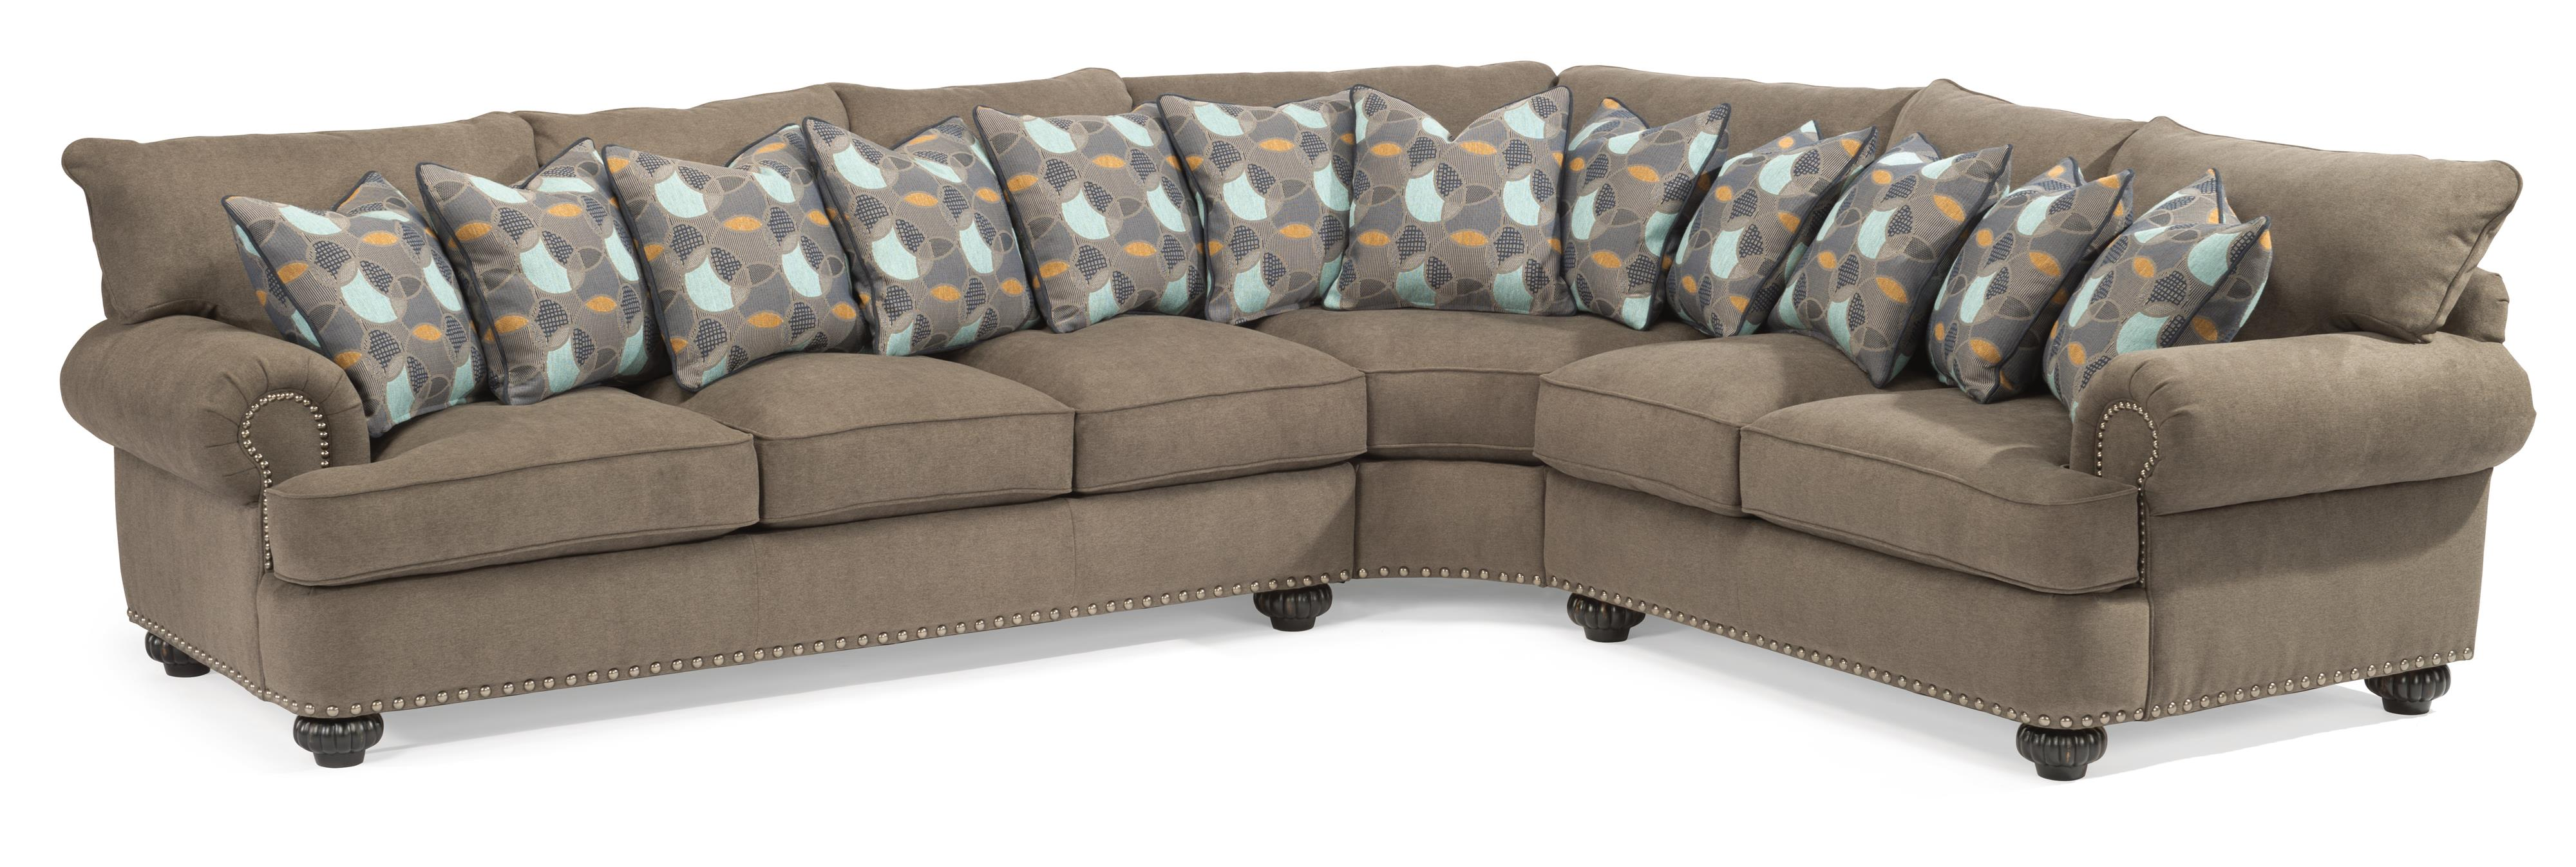 Flexsteel Patterson  3 Pc Sectional Sofa w/ Nails - Item Number: 7322-37+23+28